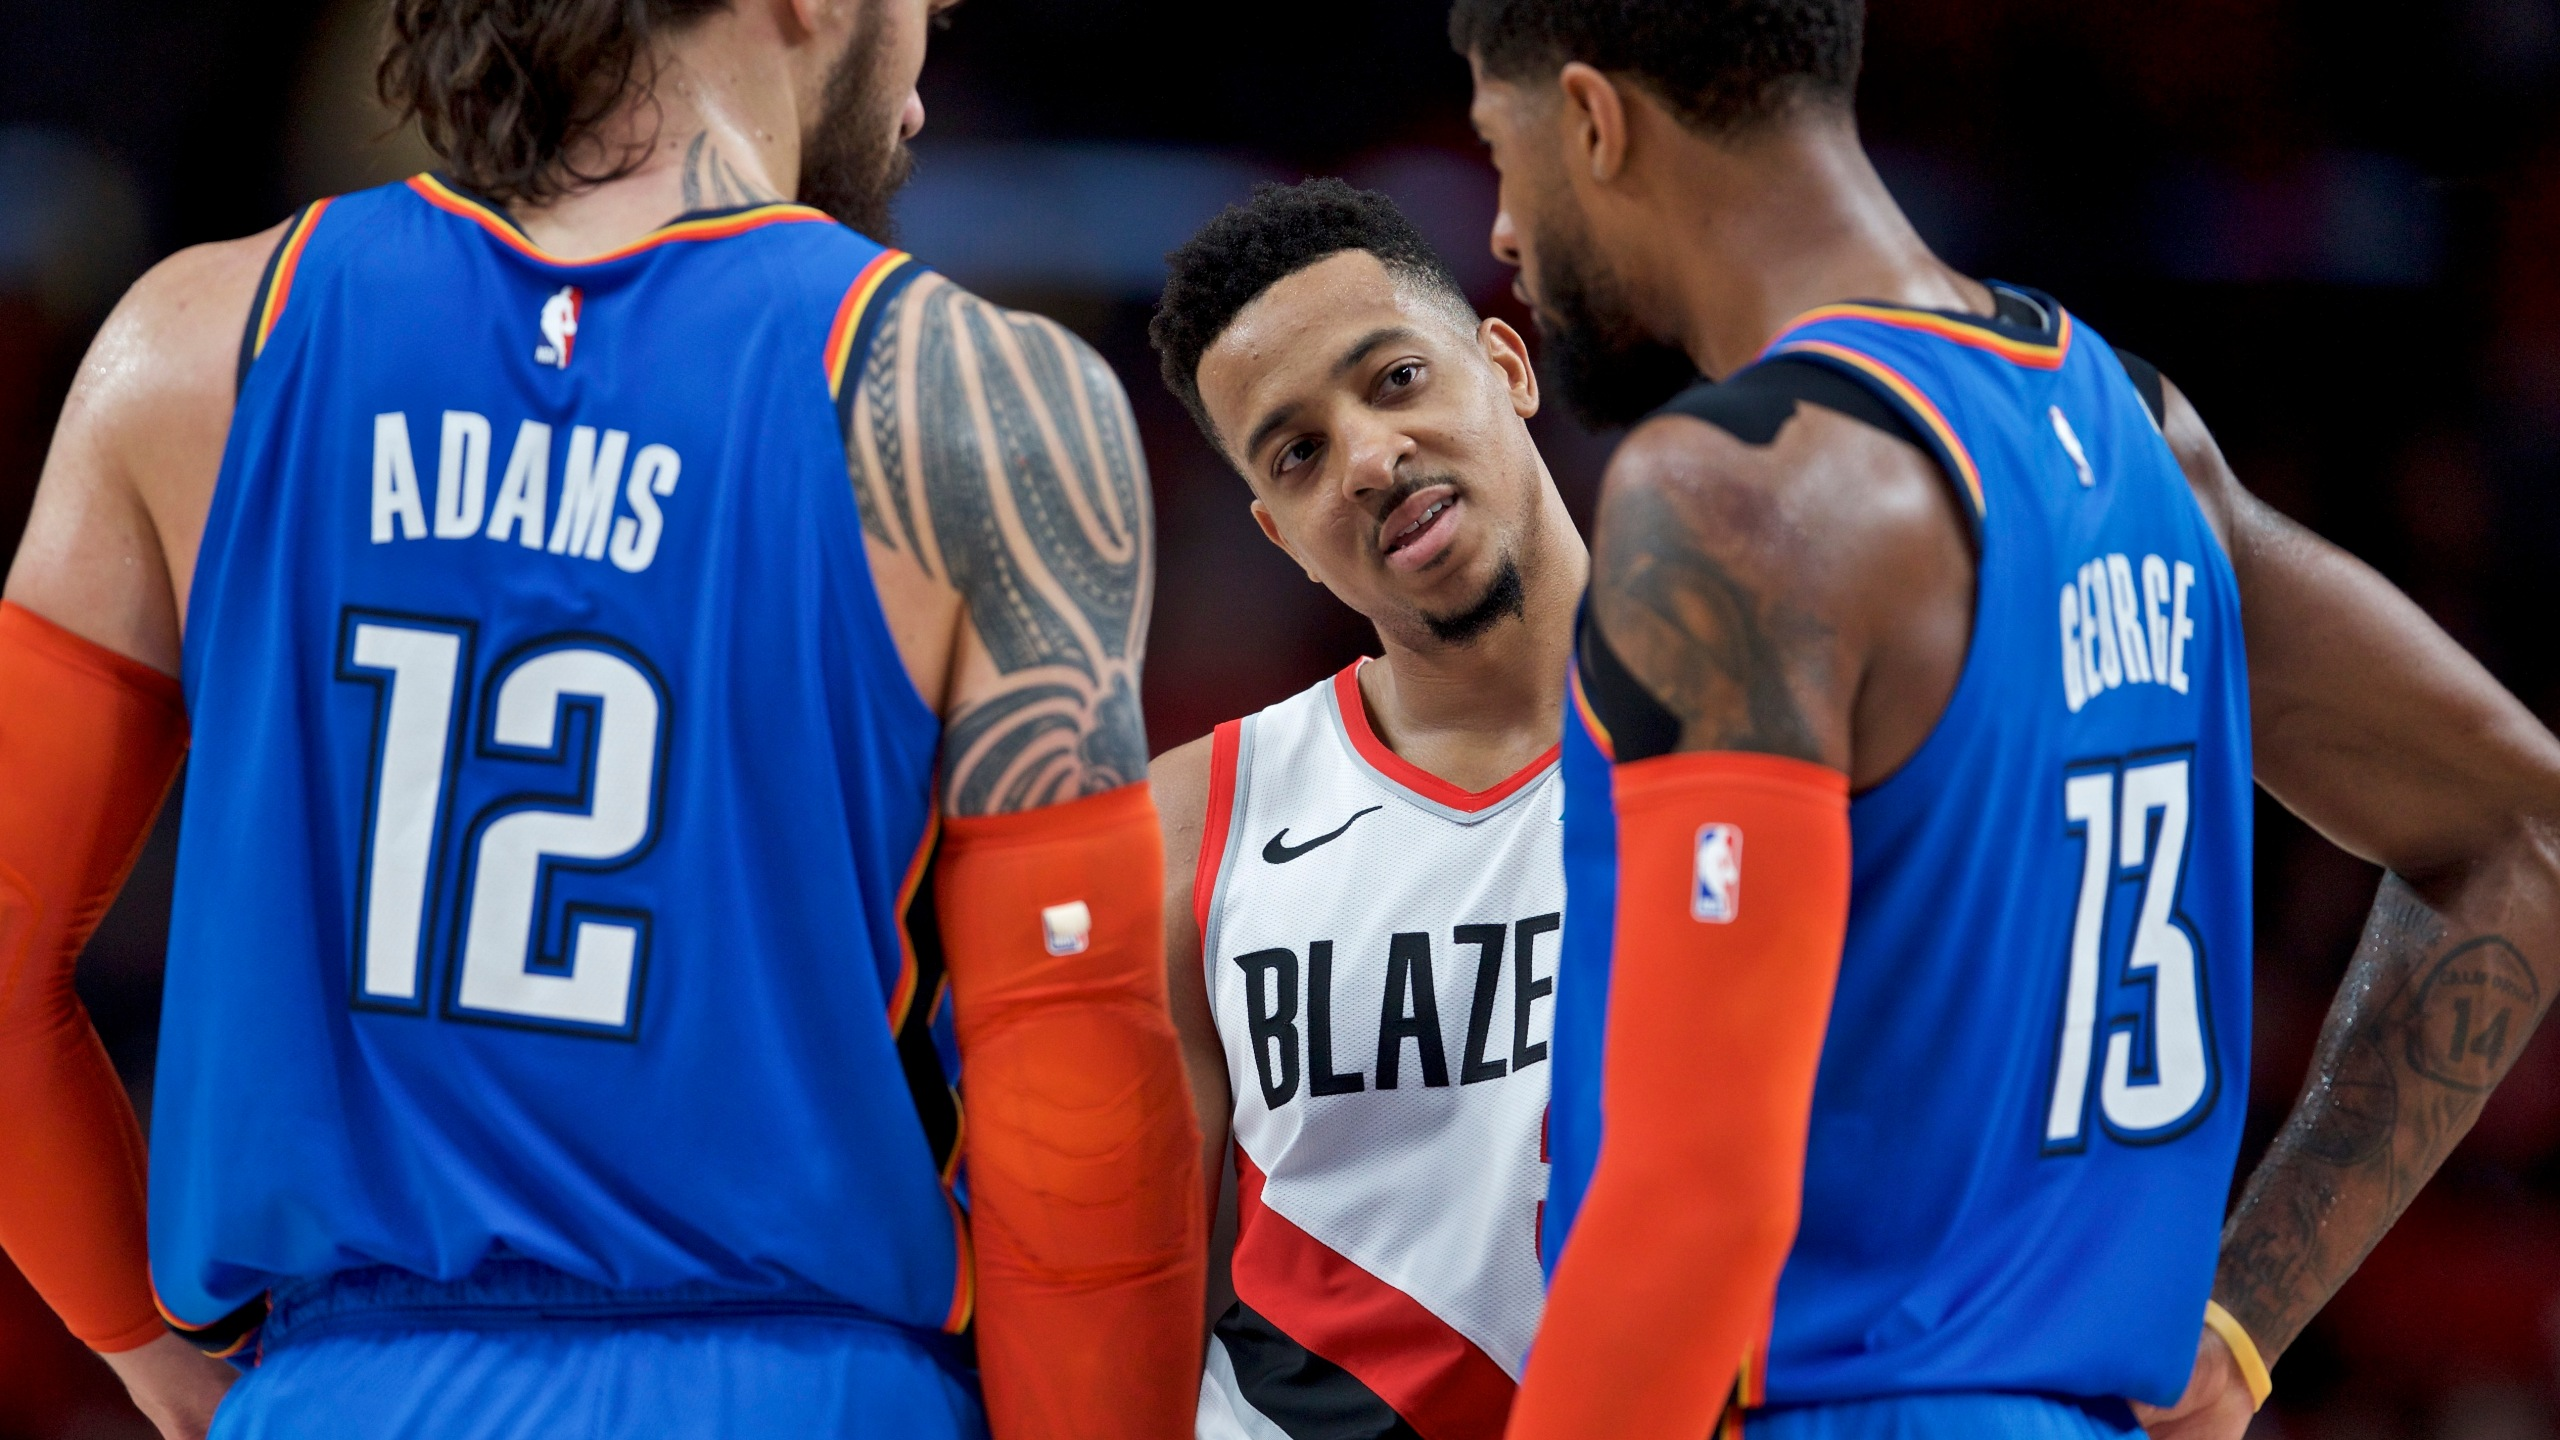 Thunder_Trail_Blazers_Basketball_93399-159532.jpg64439966